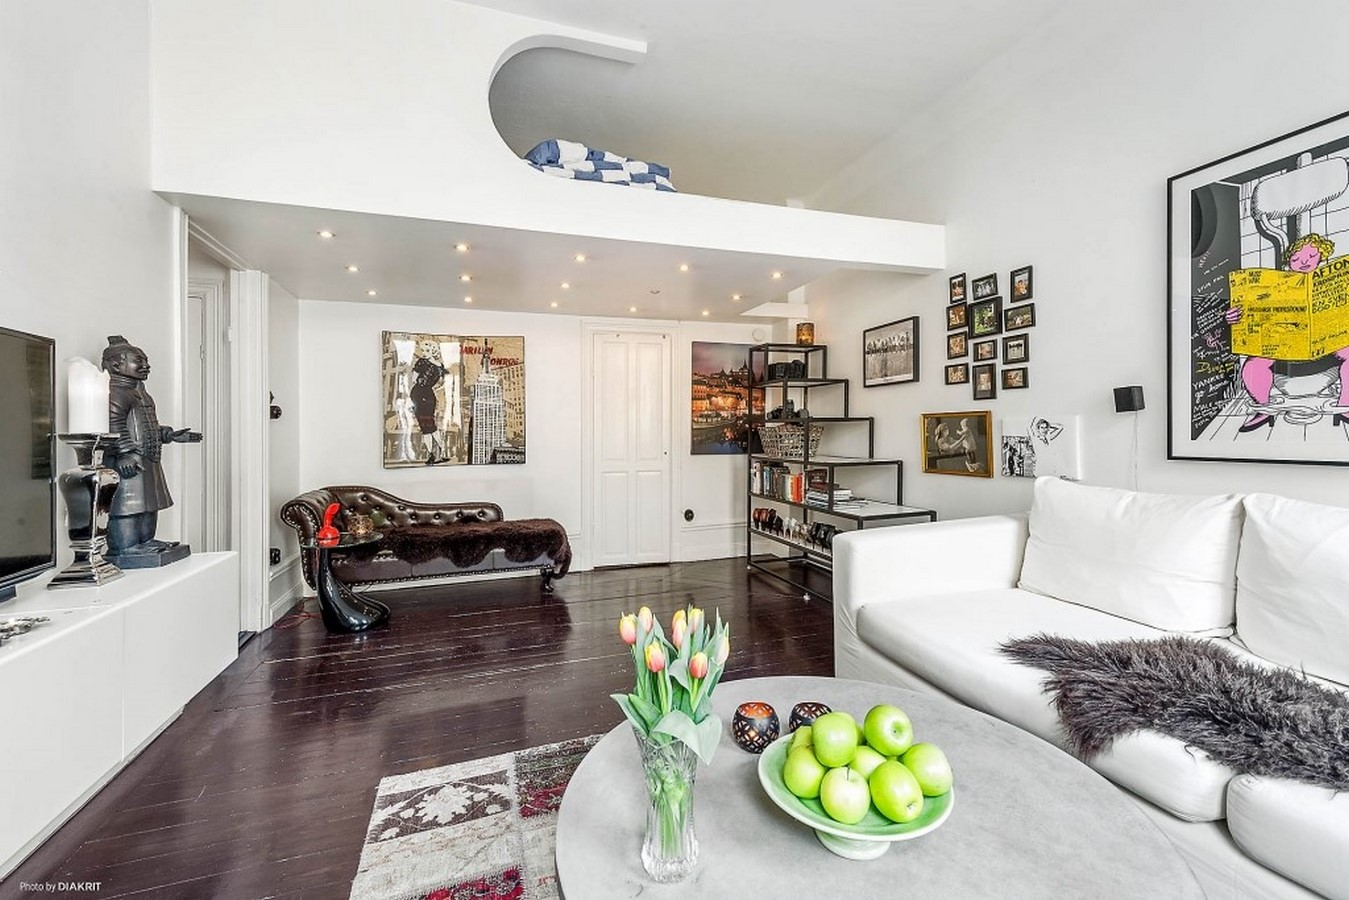 Can luxury fit into a 600sq.ft apartment - Sheet1